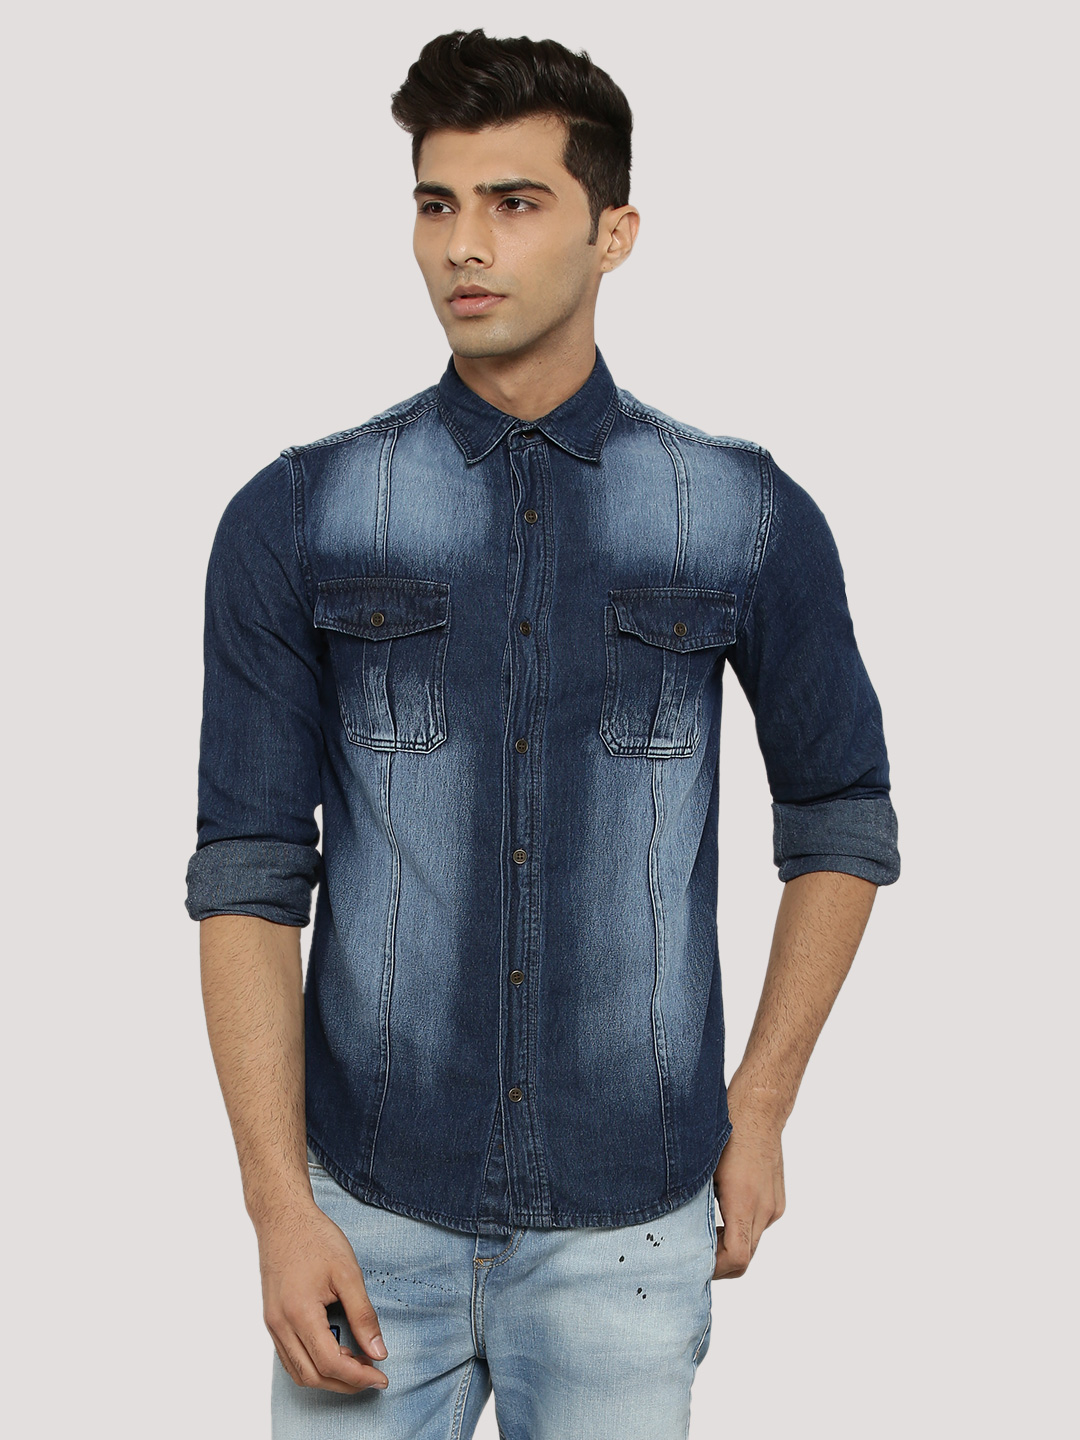 Atorse Blue Washed Denim Shirt With Twin Pockets 1